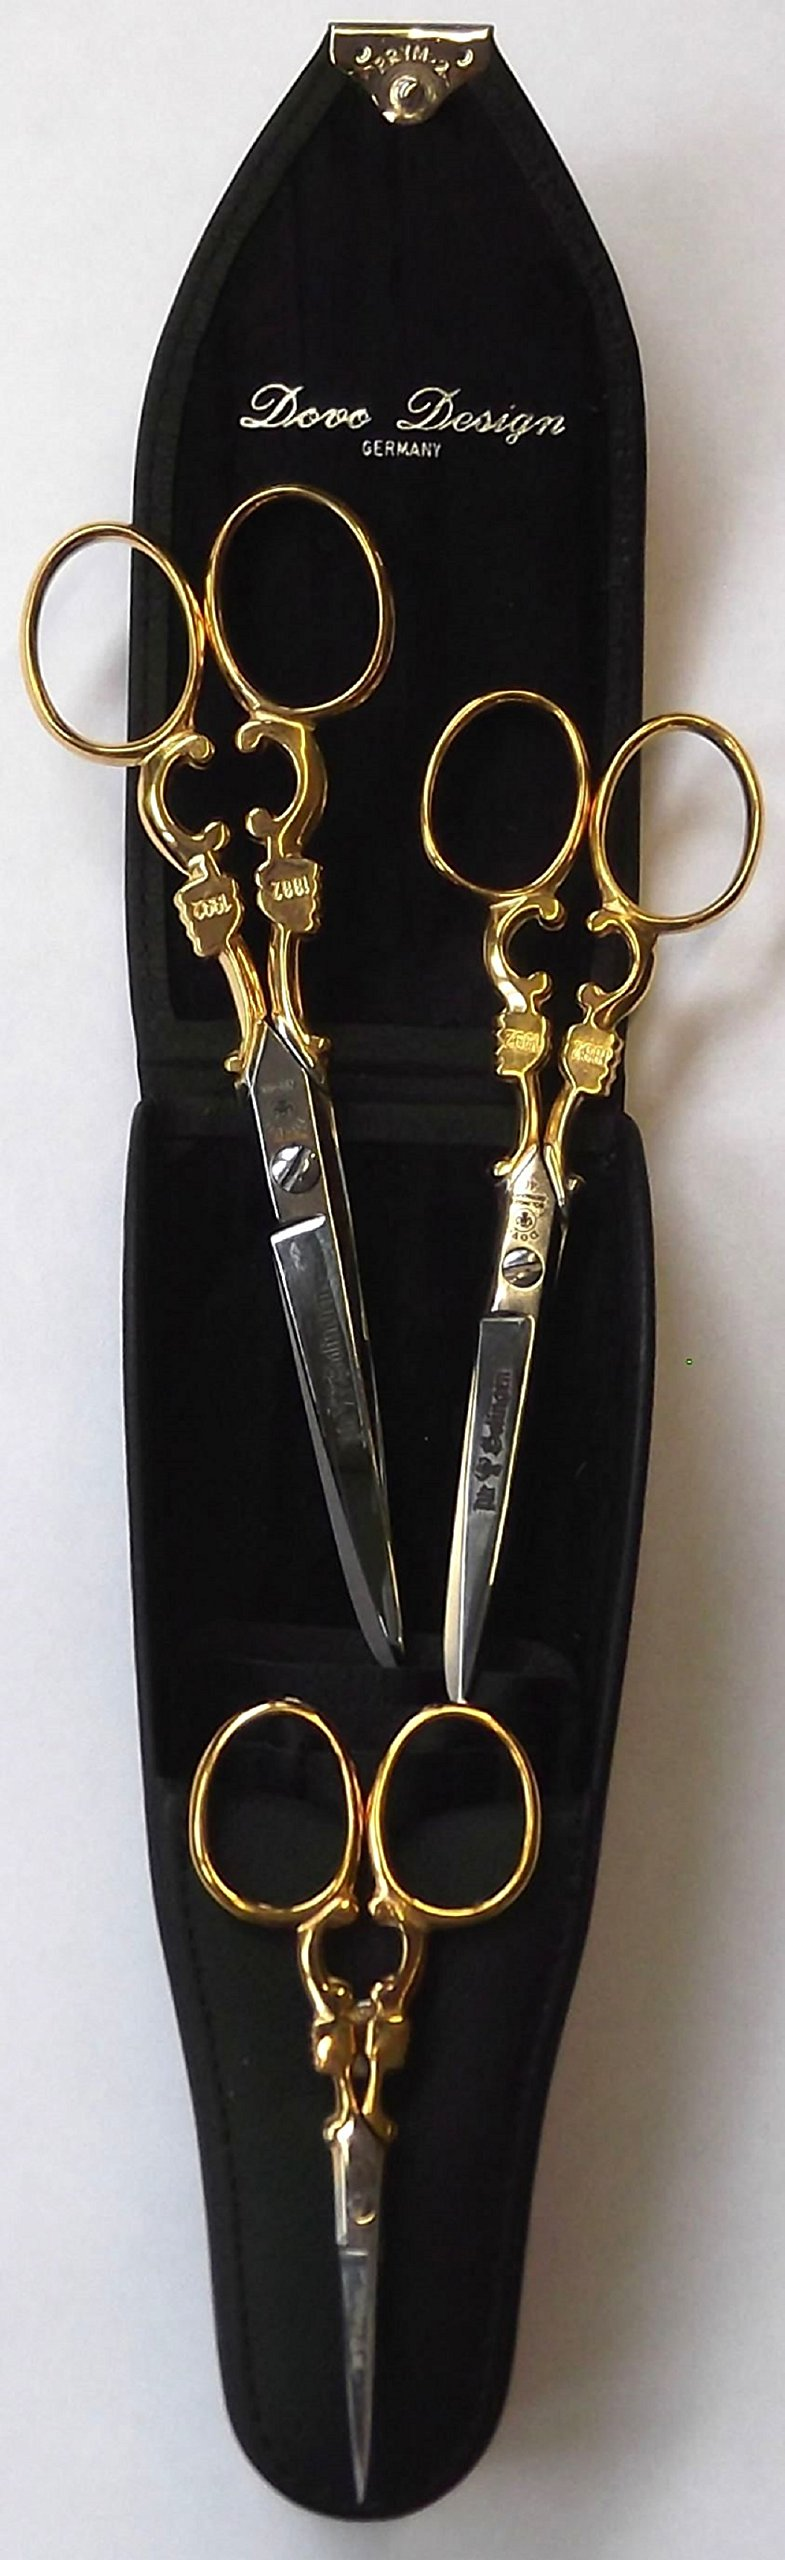 Dovo Scissor Set 3 pc. with Black Leather Case. Gold Plated 3-1/2'', 5'', 6''